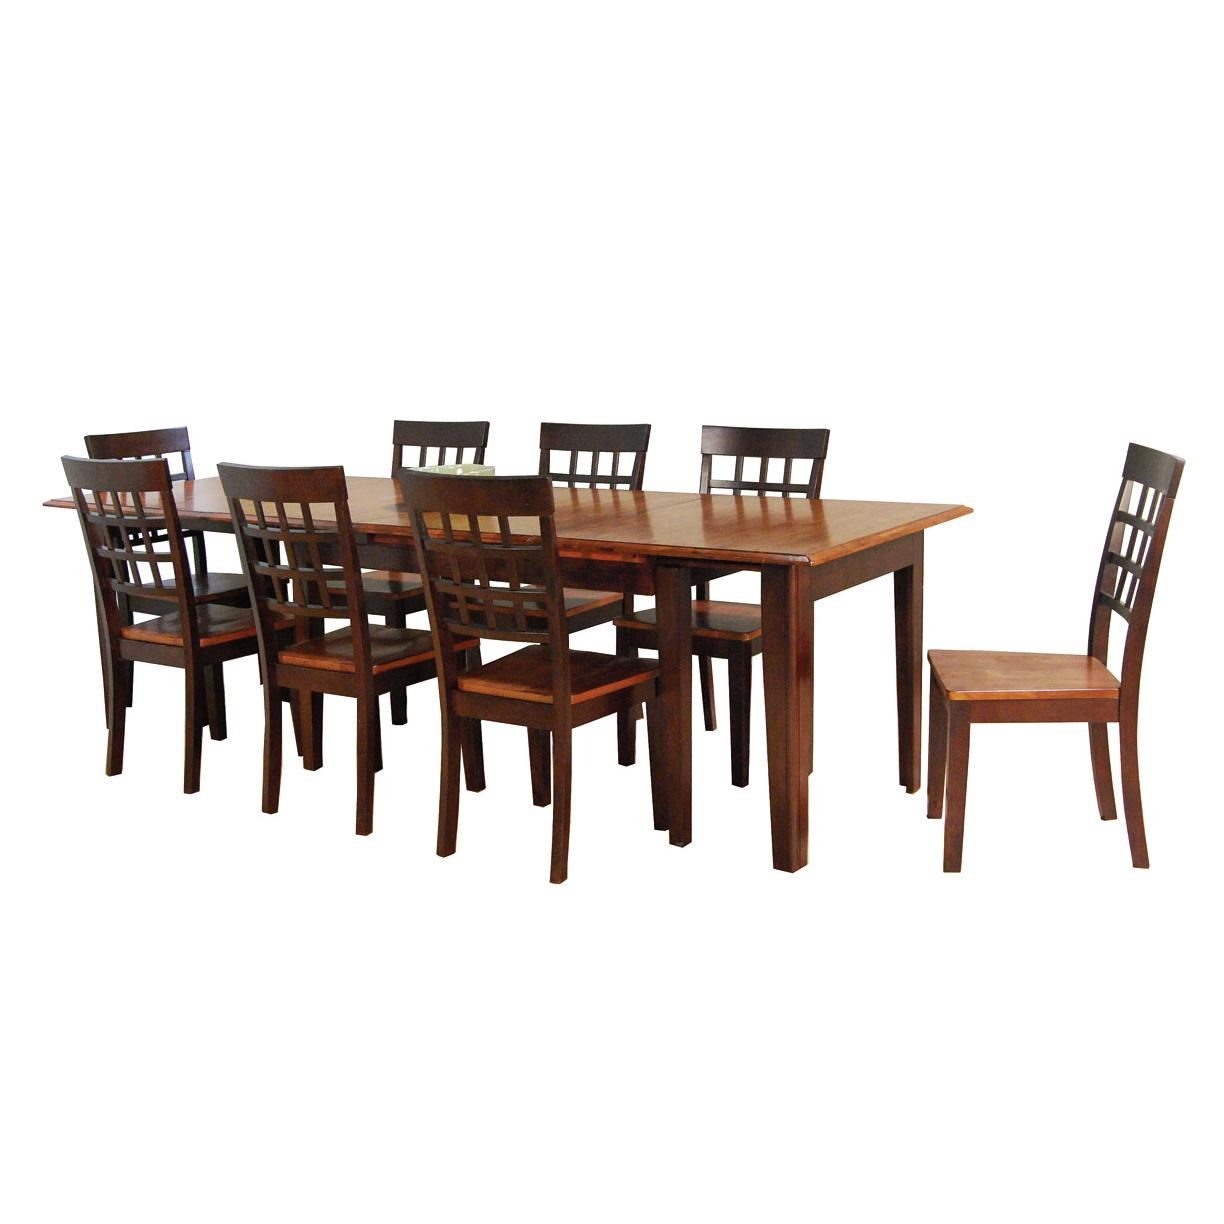 HD wallpapers bristol point 7 piece dining set